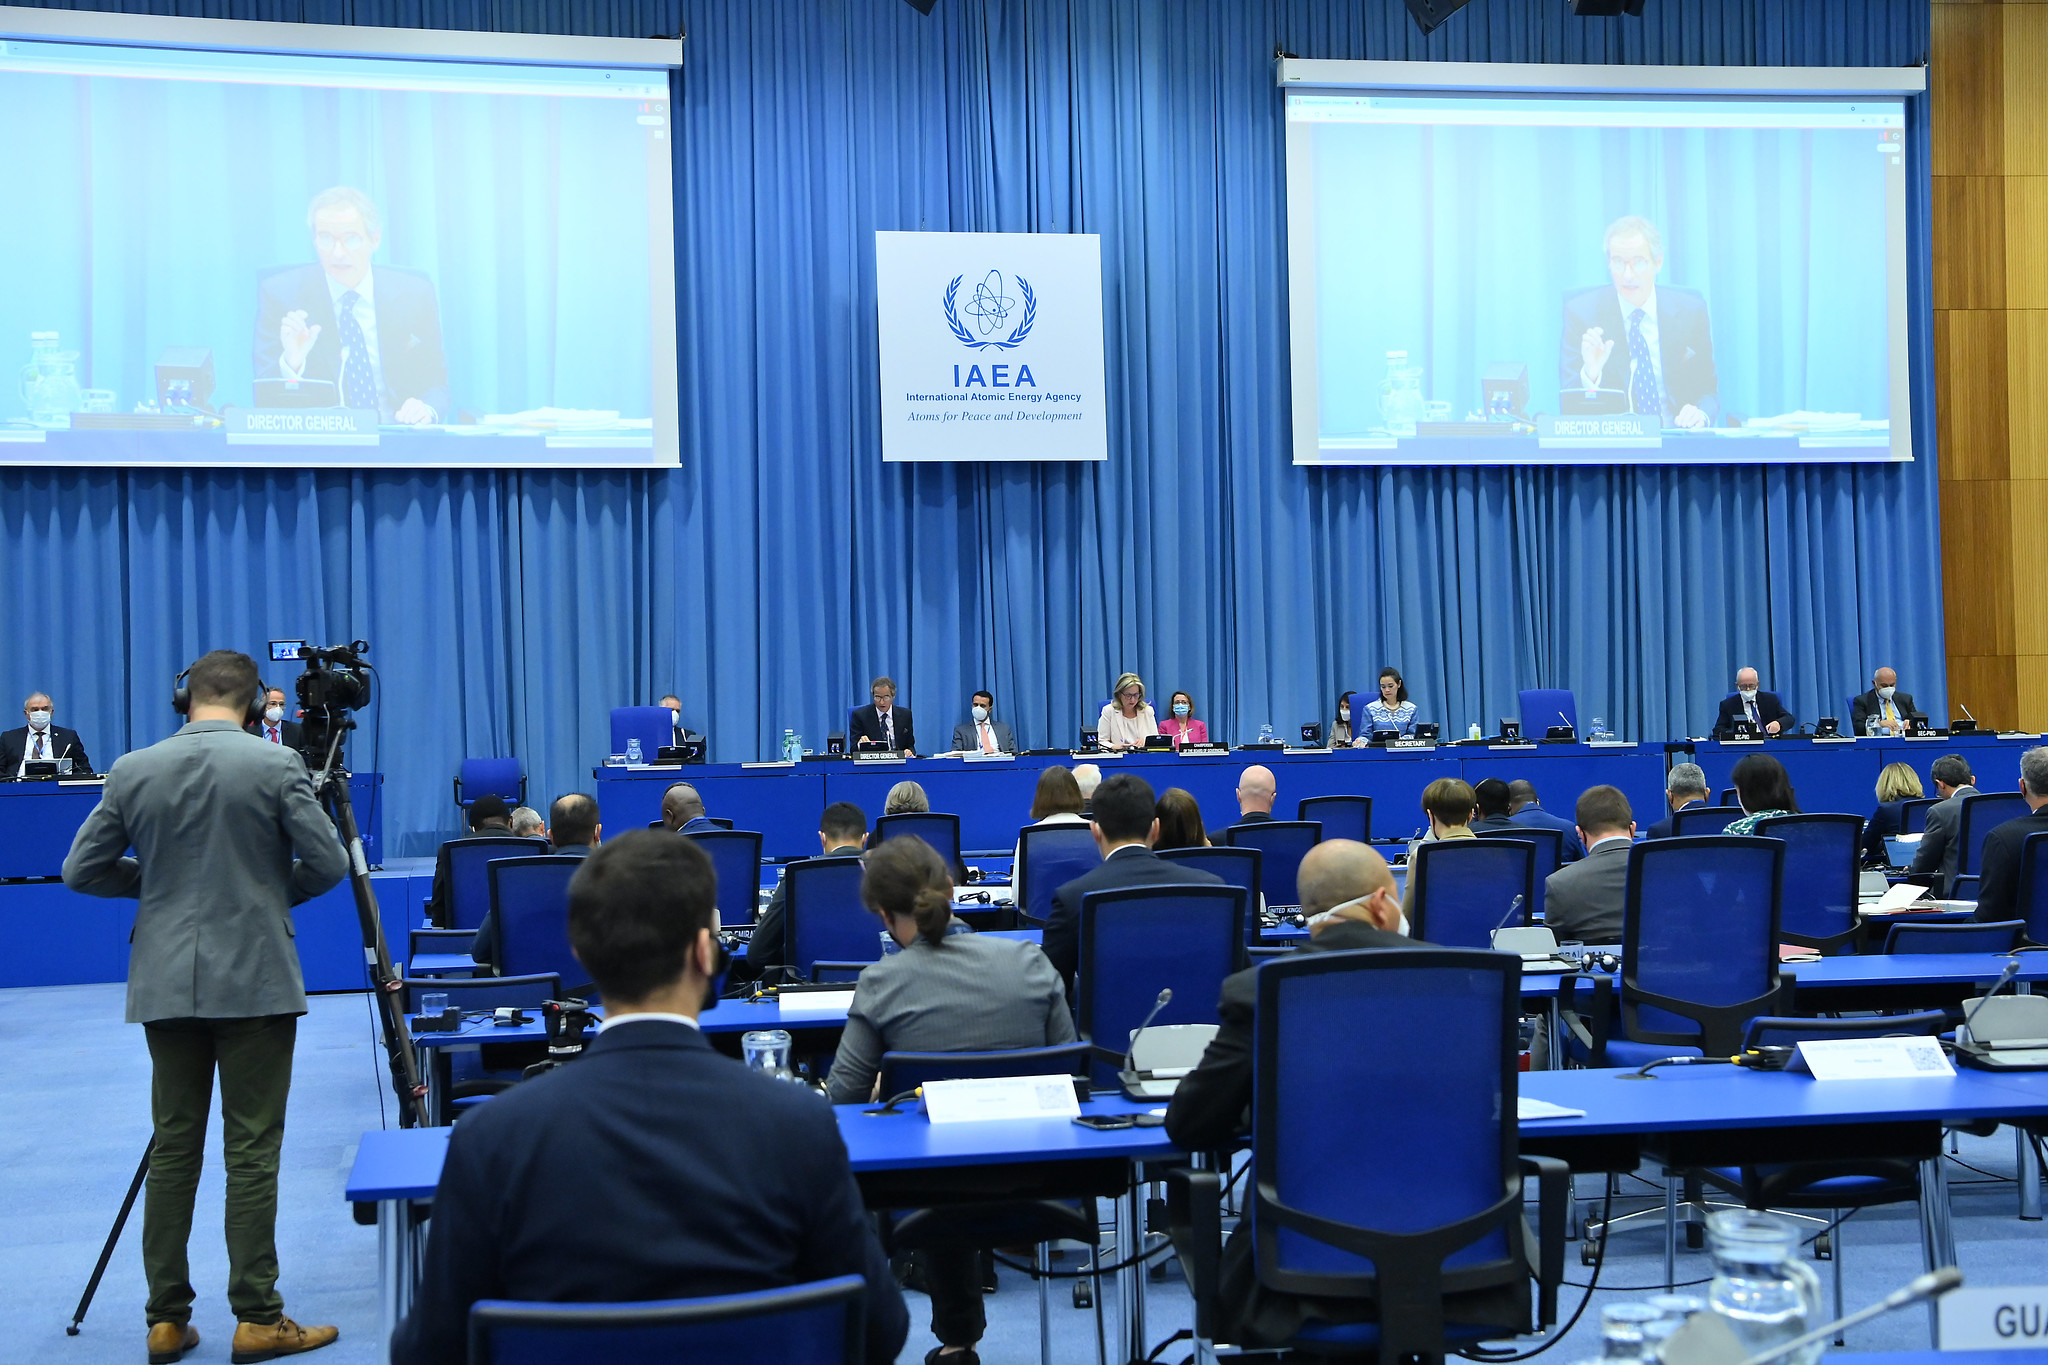 Developments with Iran are constructive, the Director General informed the IAEA Board of Governors